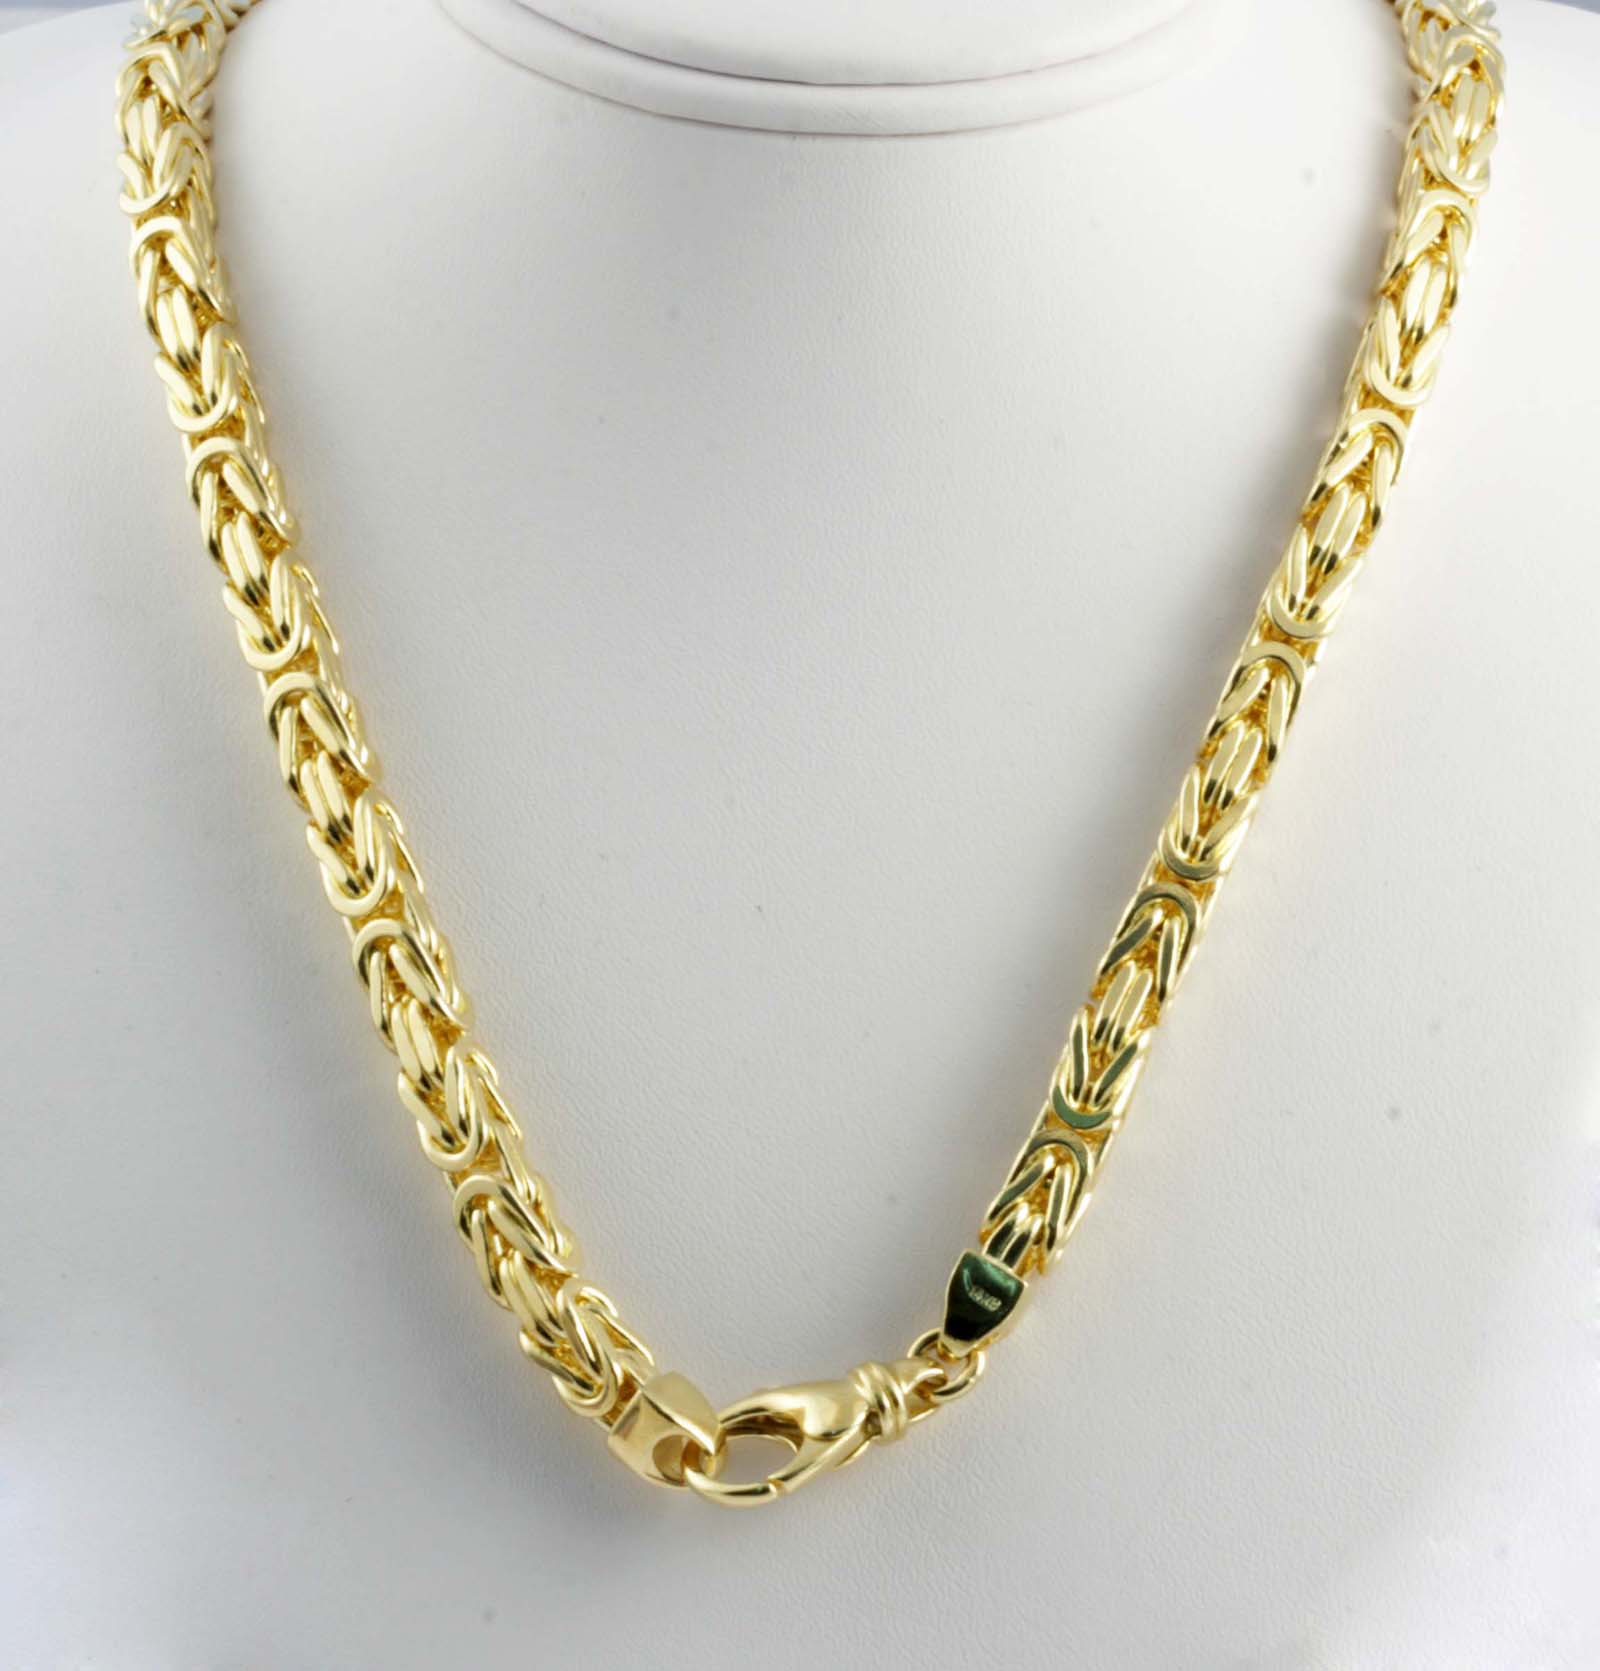 Mens Gold Byzantine Necklace: 193.40 Gm 14k Yellow Solid Gold Men's Women's Byzantine